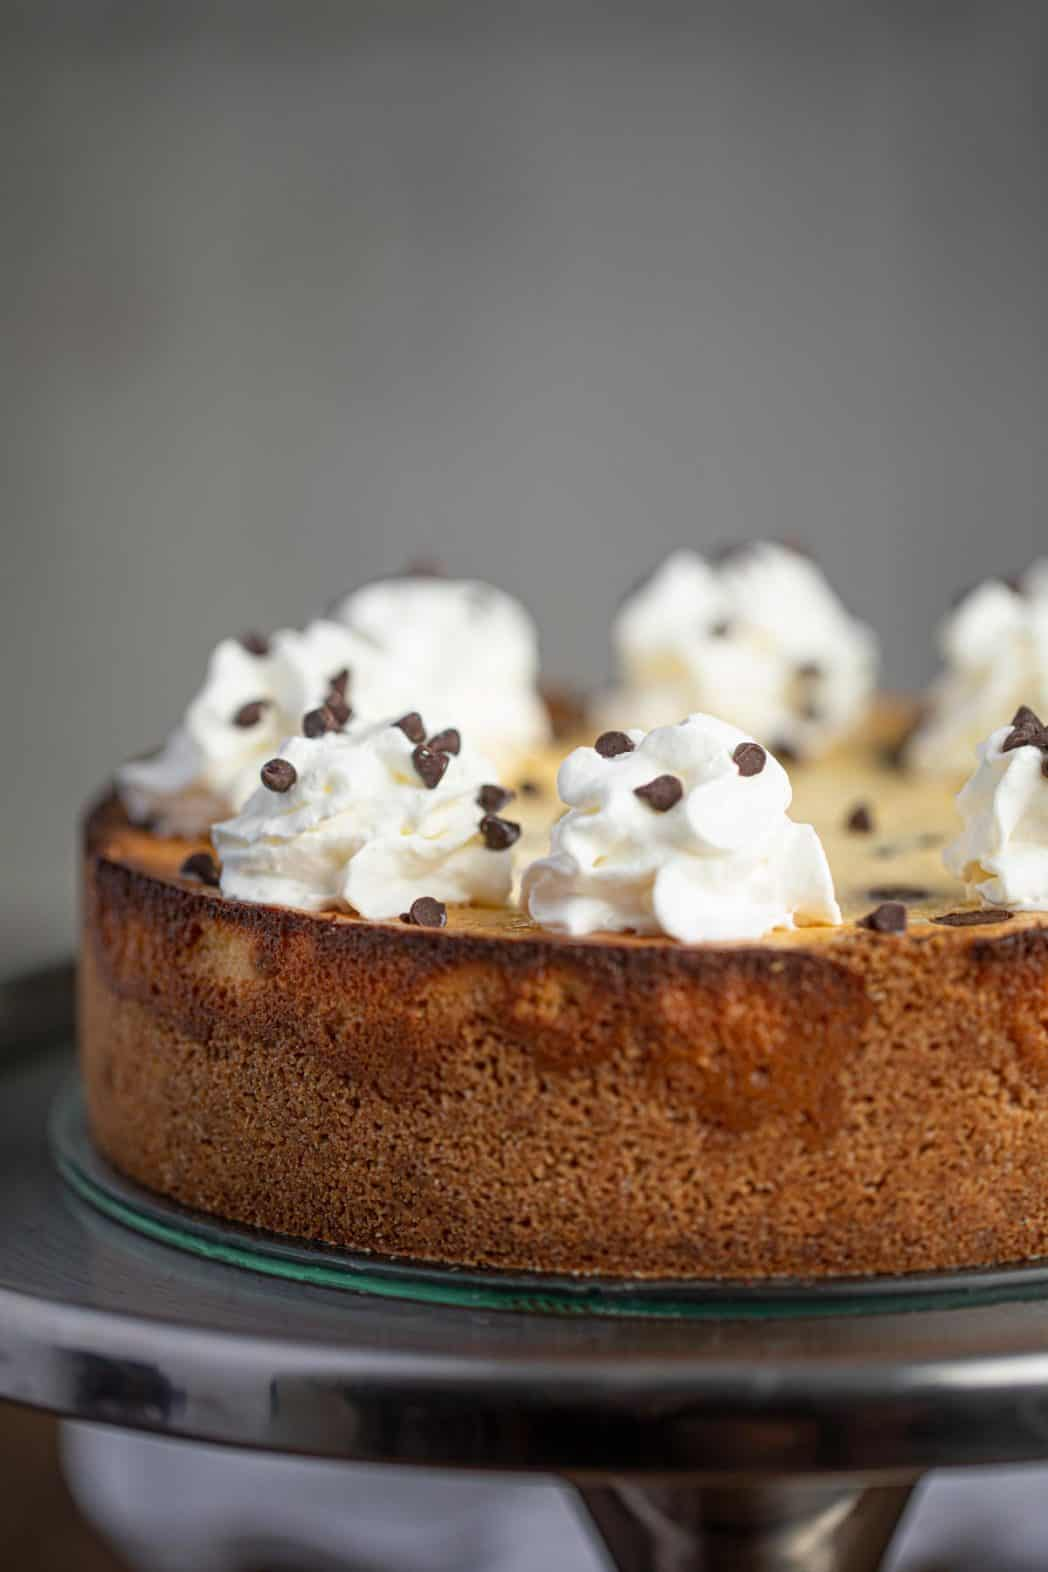 Whole Chocolate Chip Cheesecake